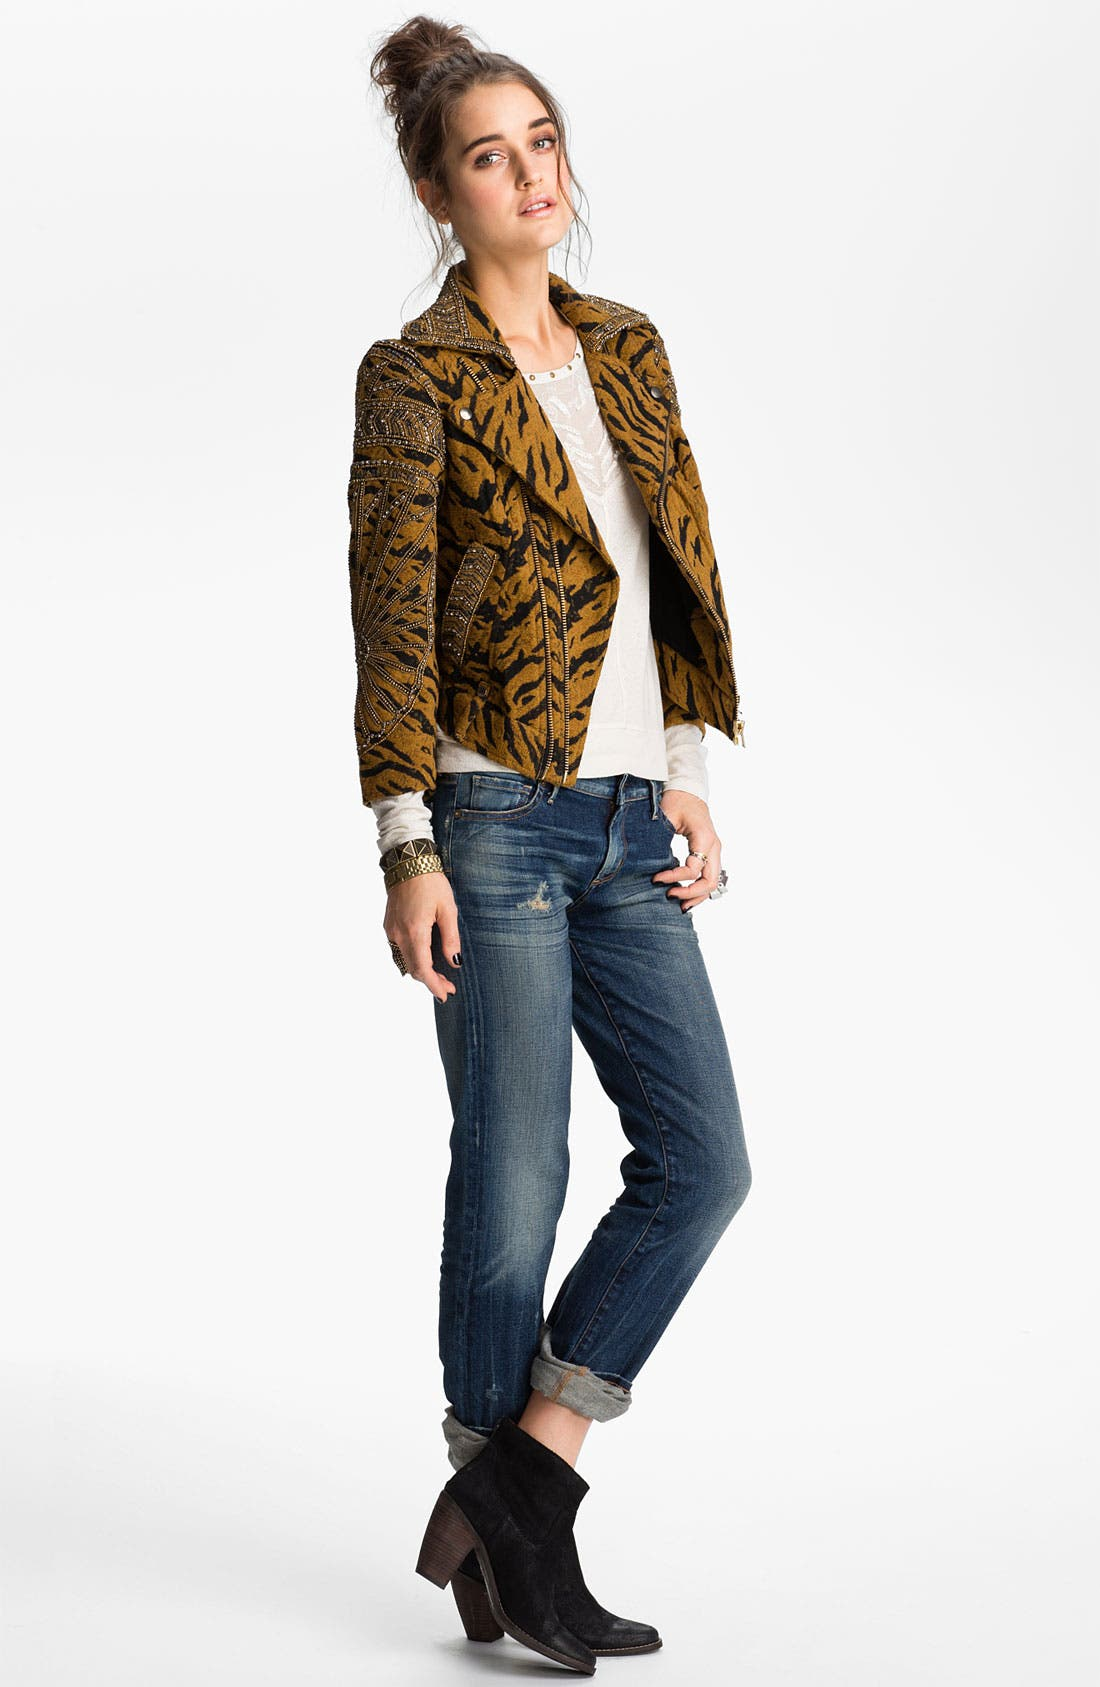 Main Image - Free People Embellished Tiger Jacquard Biker Jacket